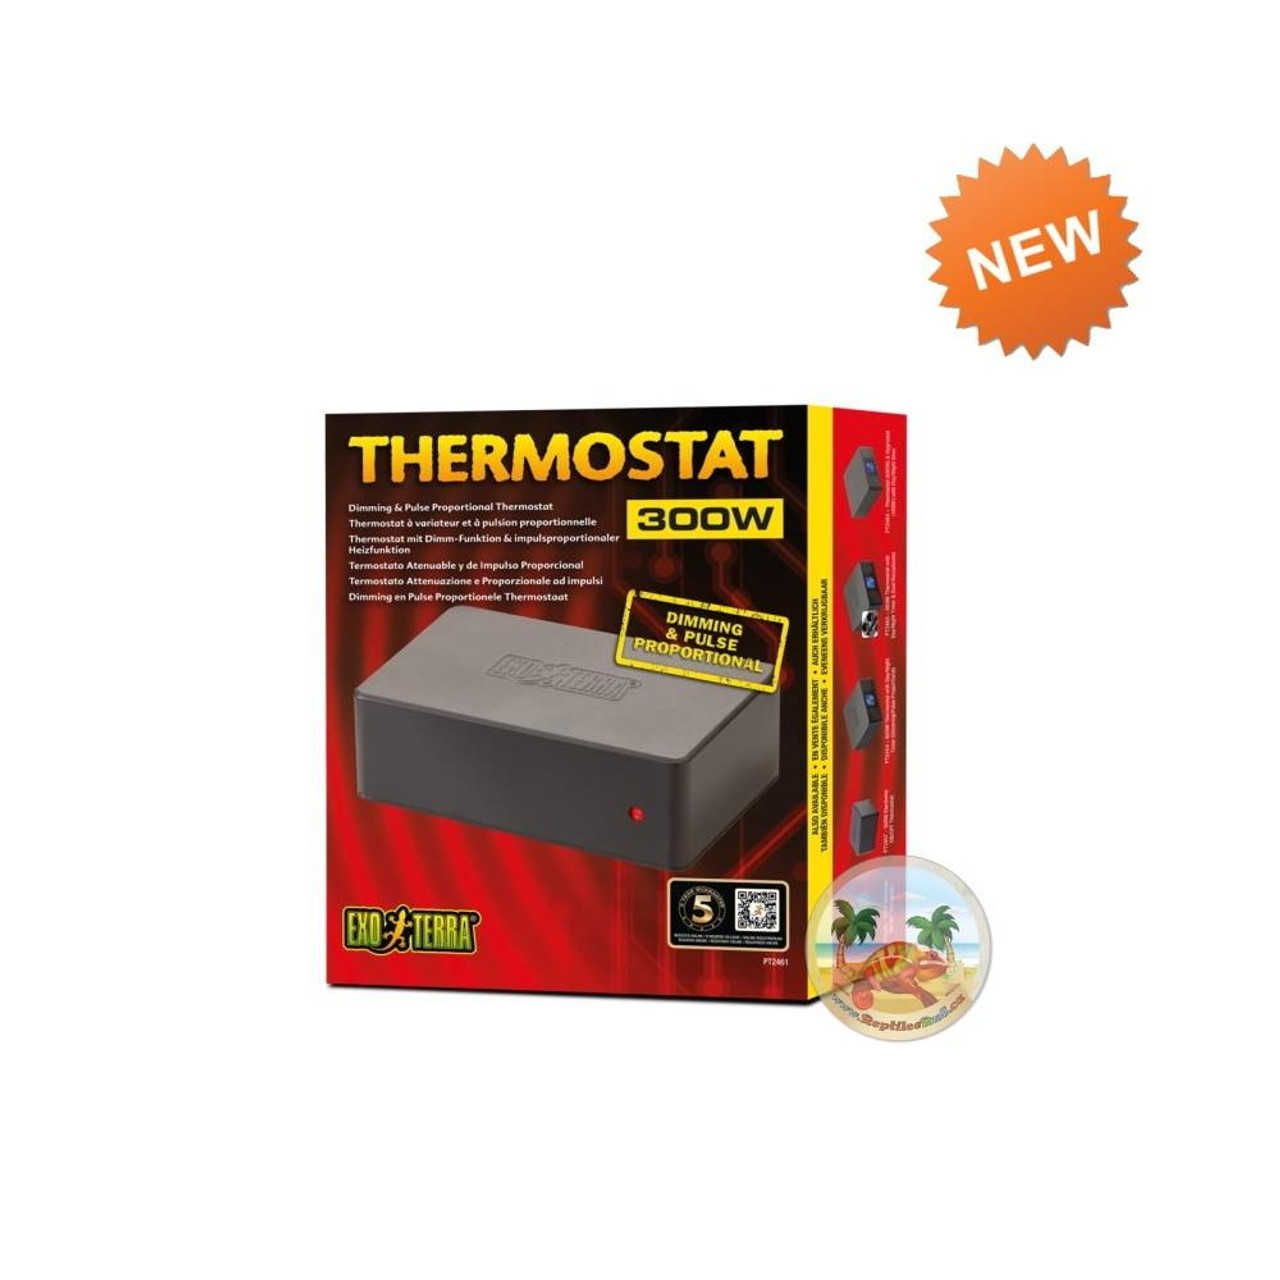 Exo Terra Exo Terra Thermostat 300W Dimming and Pulse Proportional Thermostat